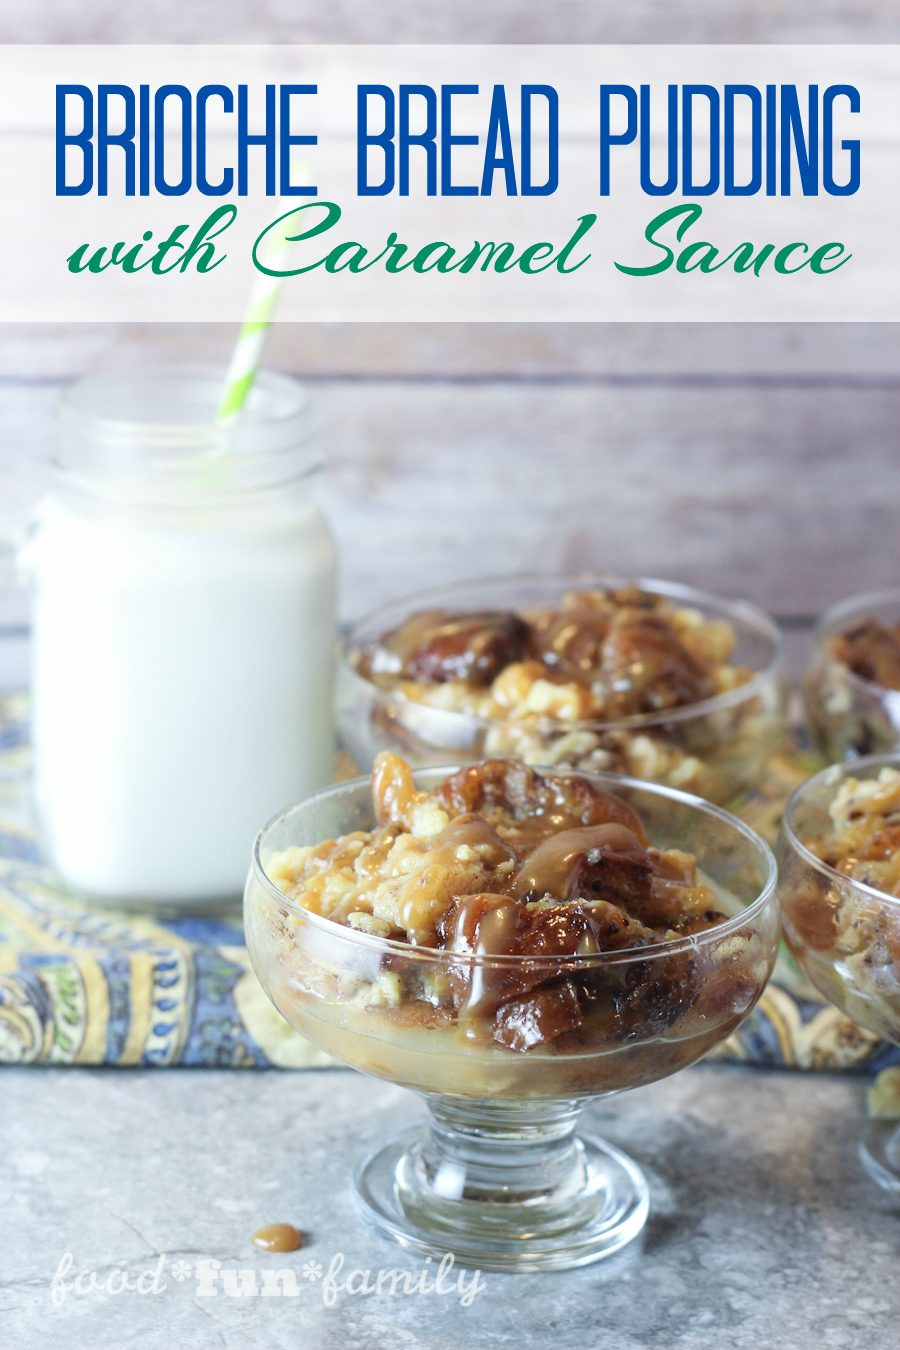 Brioche bread pudding with caramel sauce from Food Fun Family